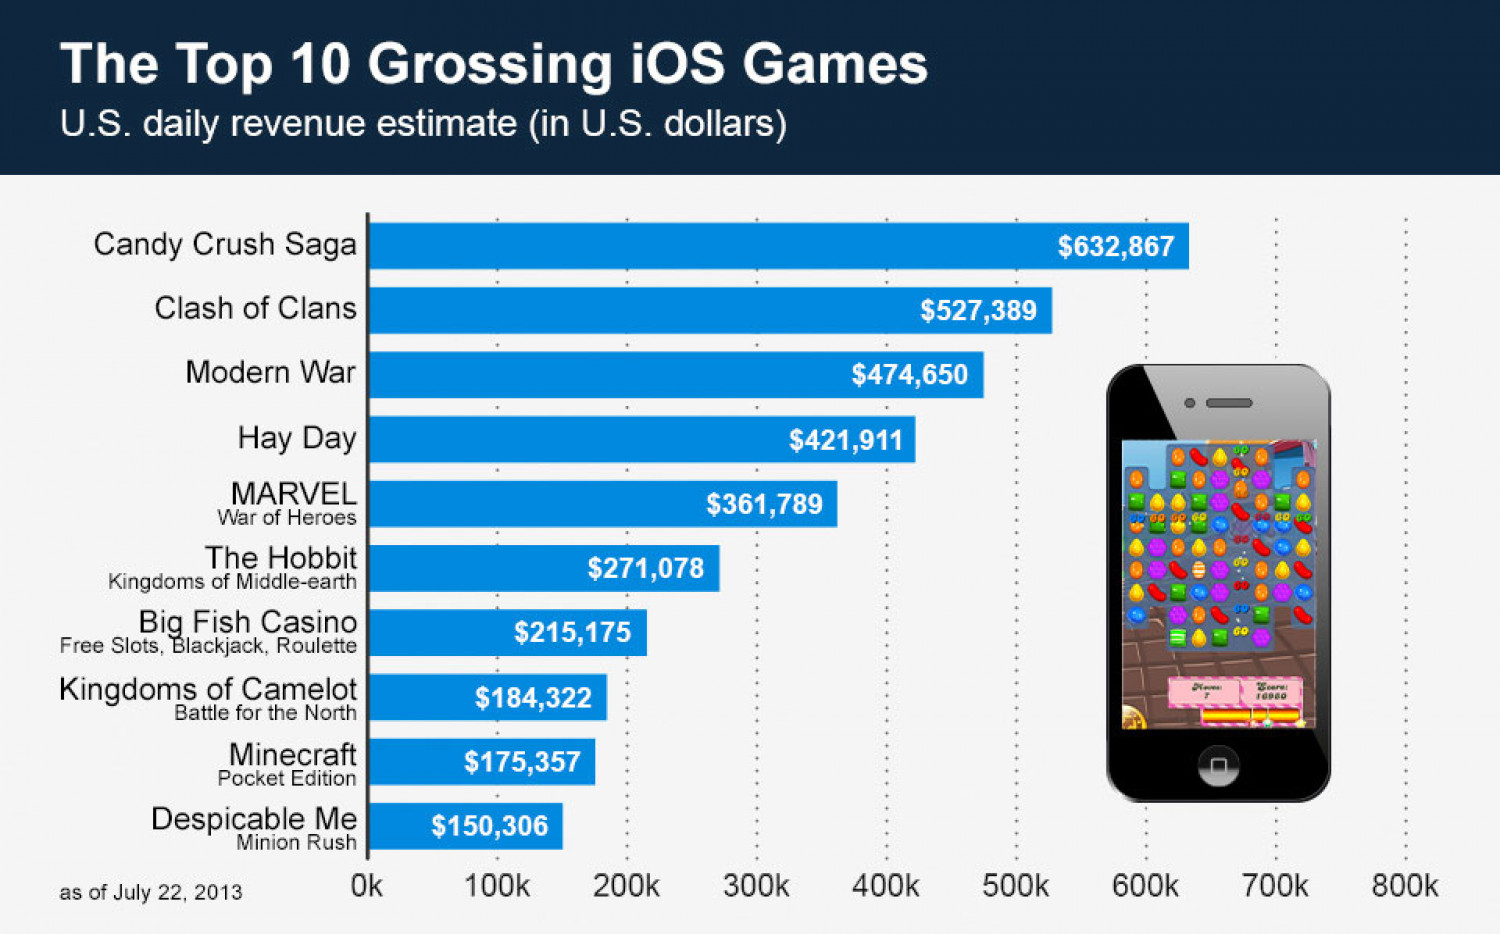 The Top 10 Grossing iOS Games Infographic